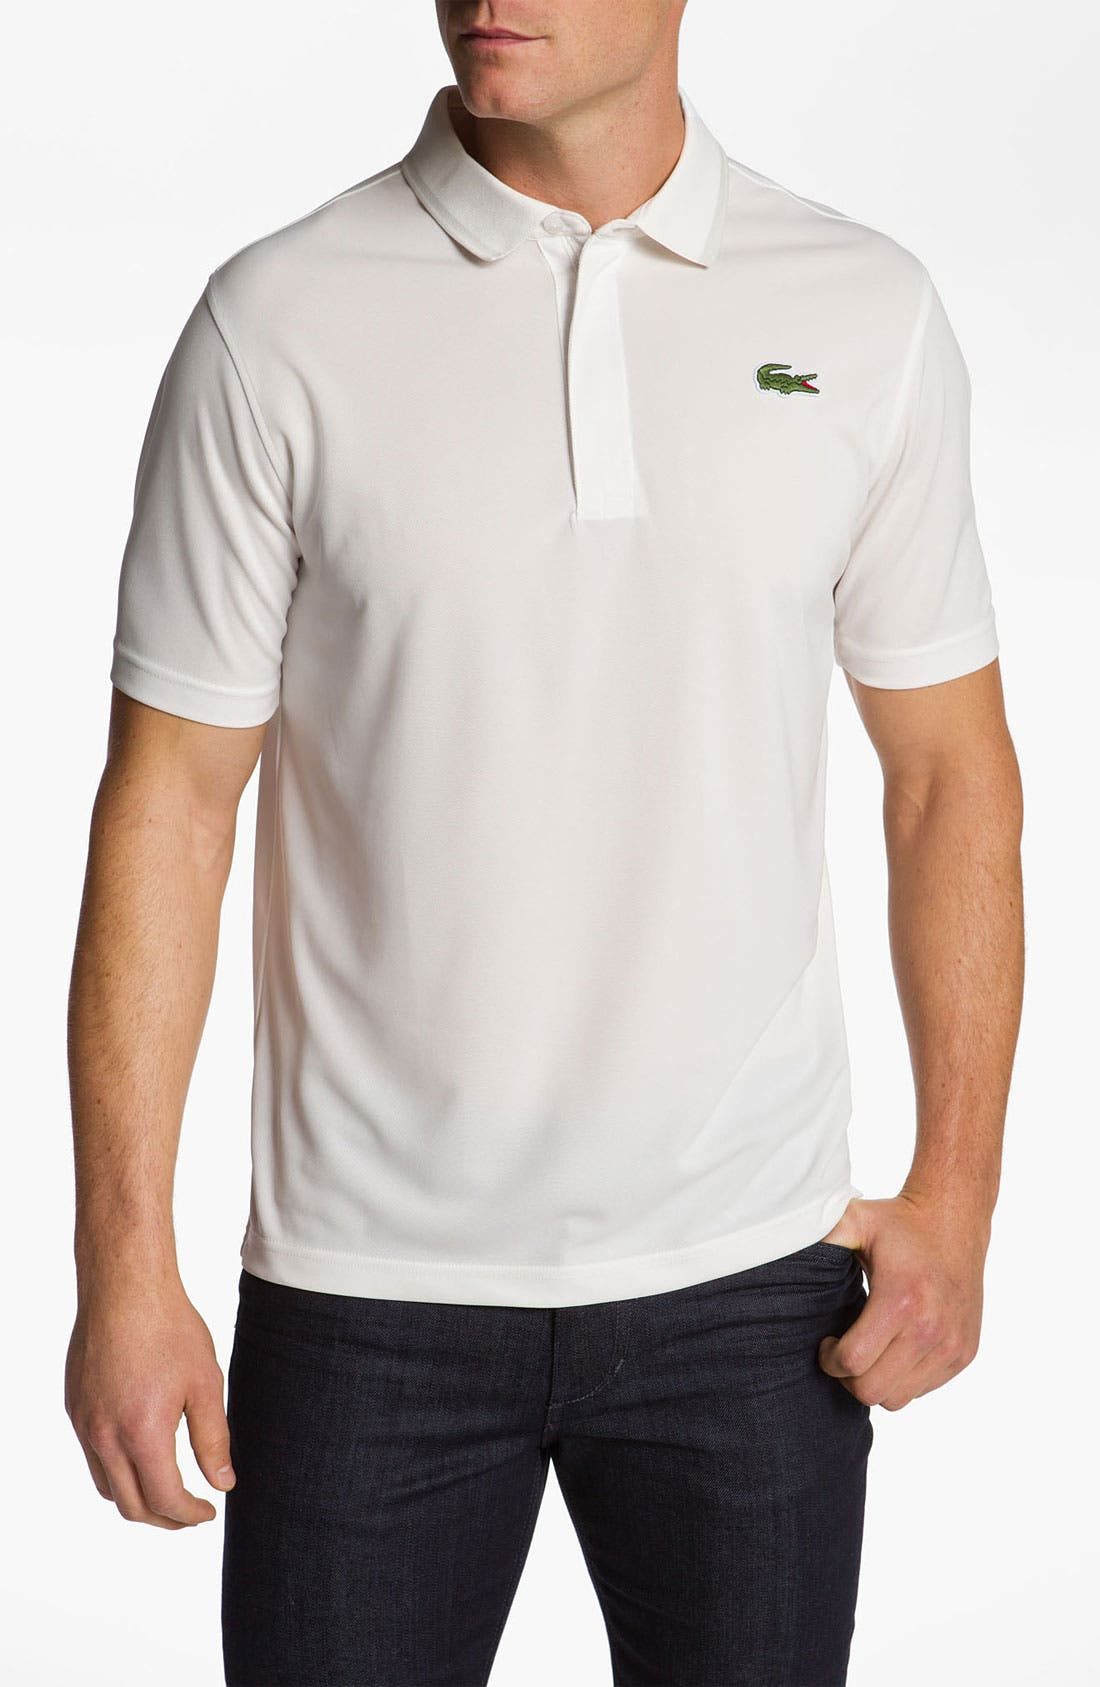 Main Image - Lacoste Tipped Pima Cotton Polo